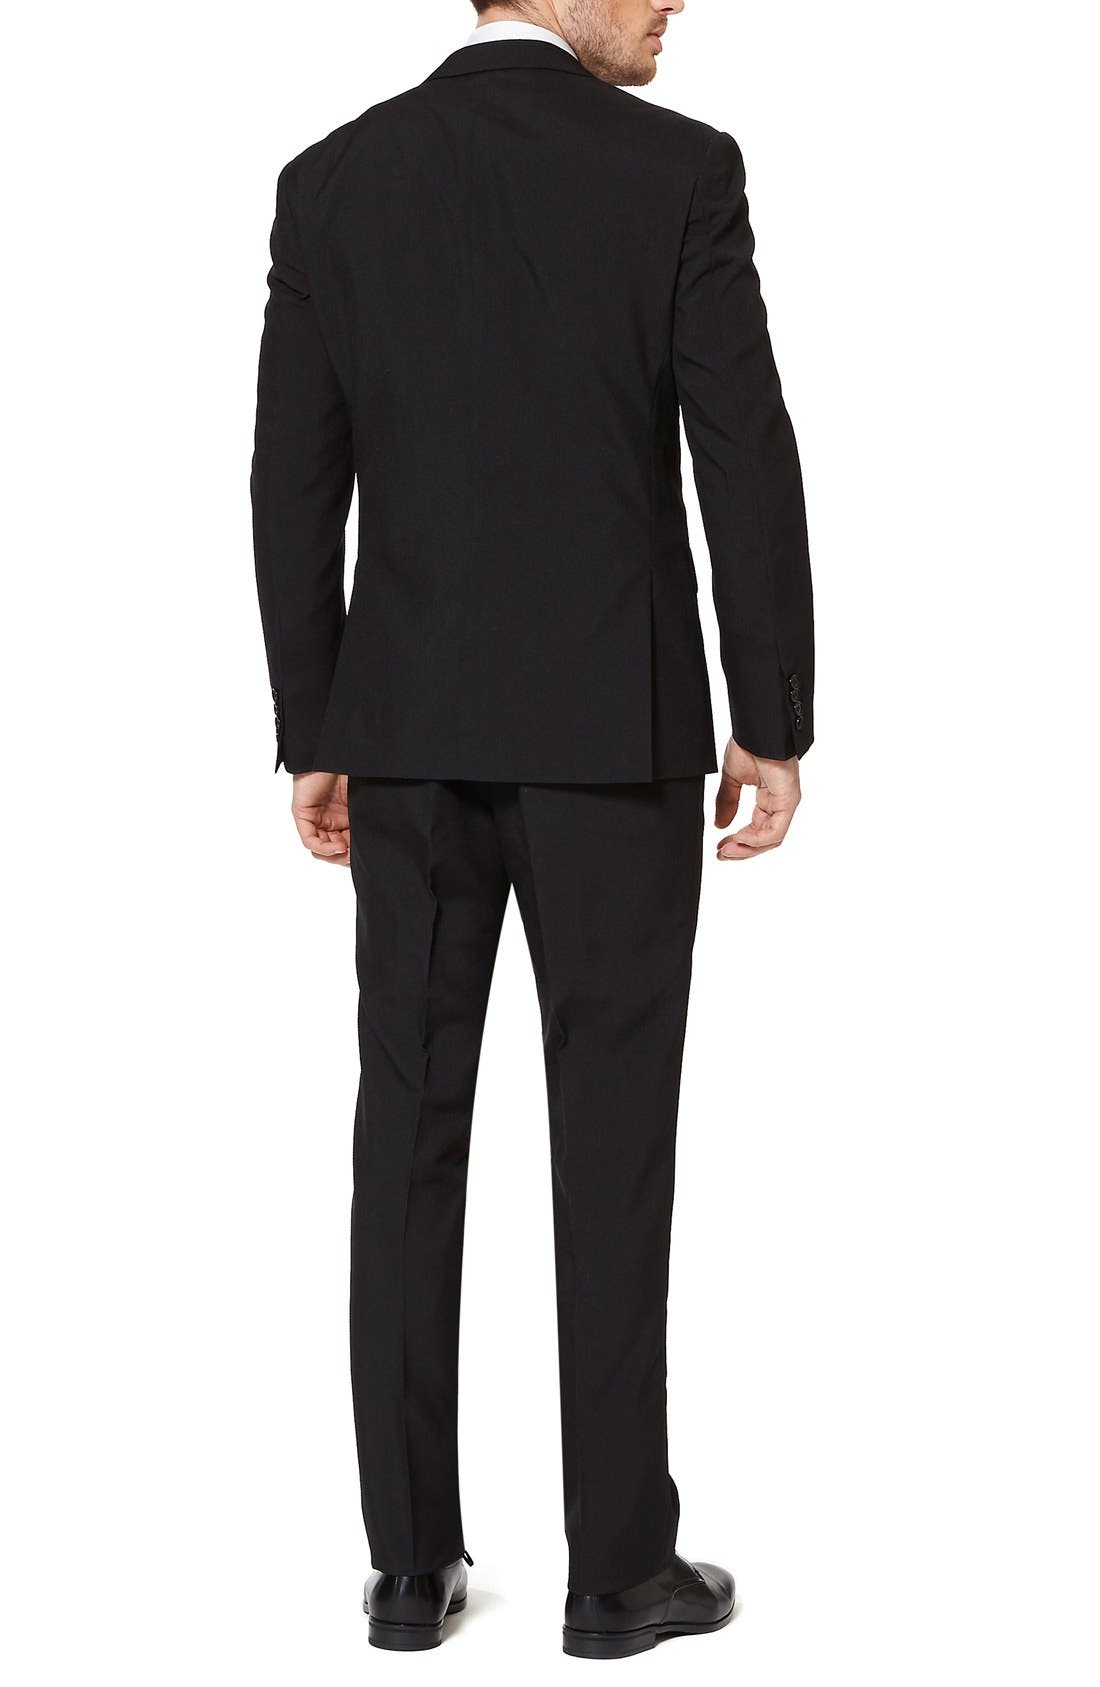 Alternate Image 2  - OppoSuits 'Black Knight' Trim Fit Two-Piece Suit with Tie